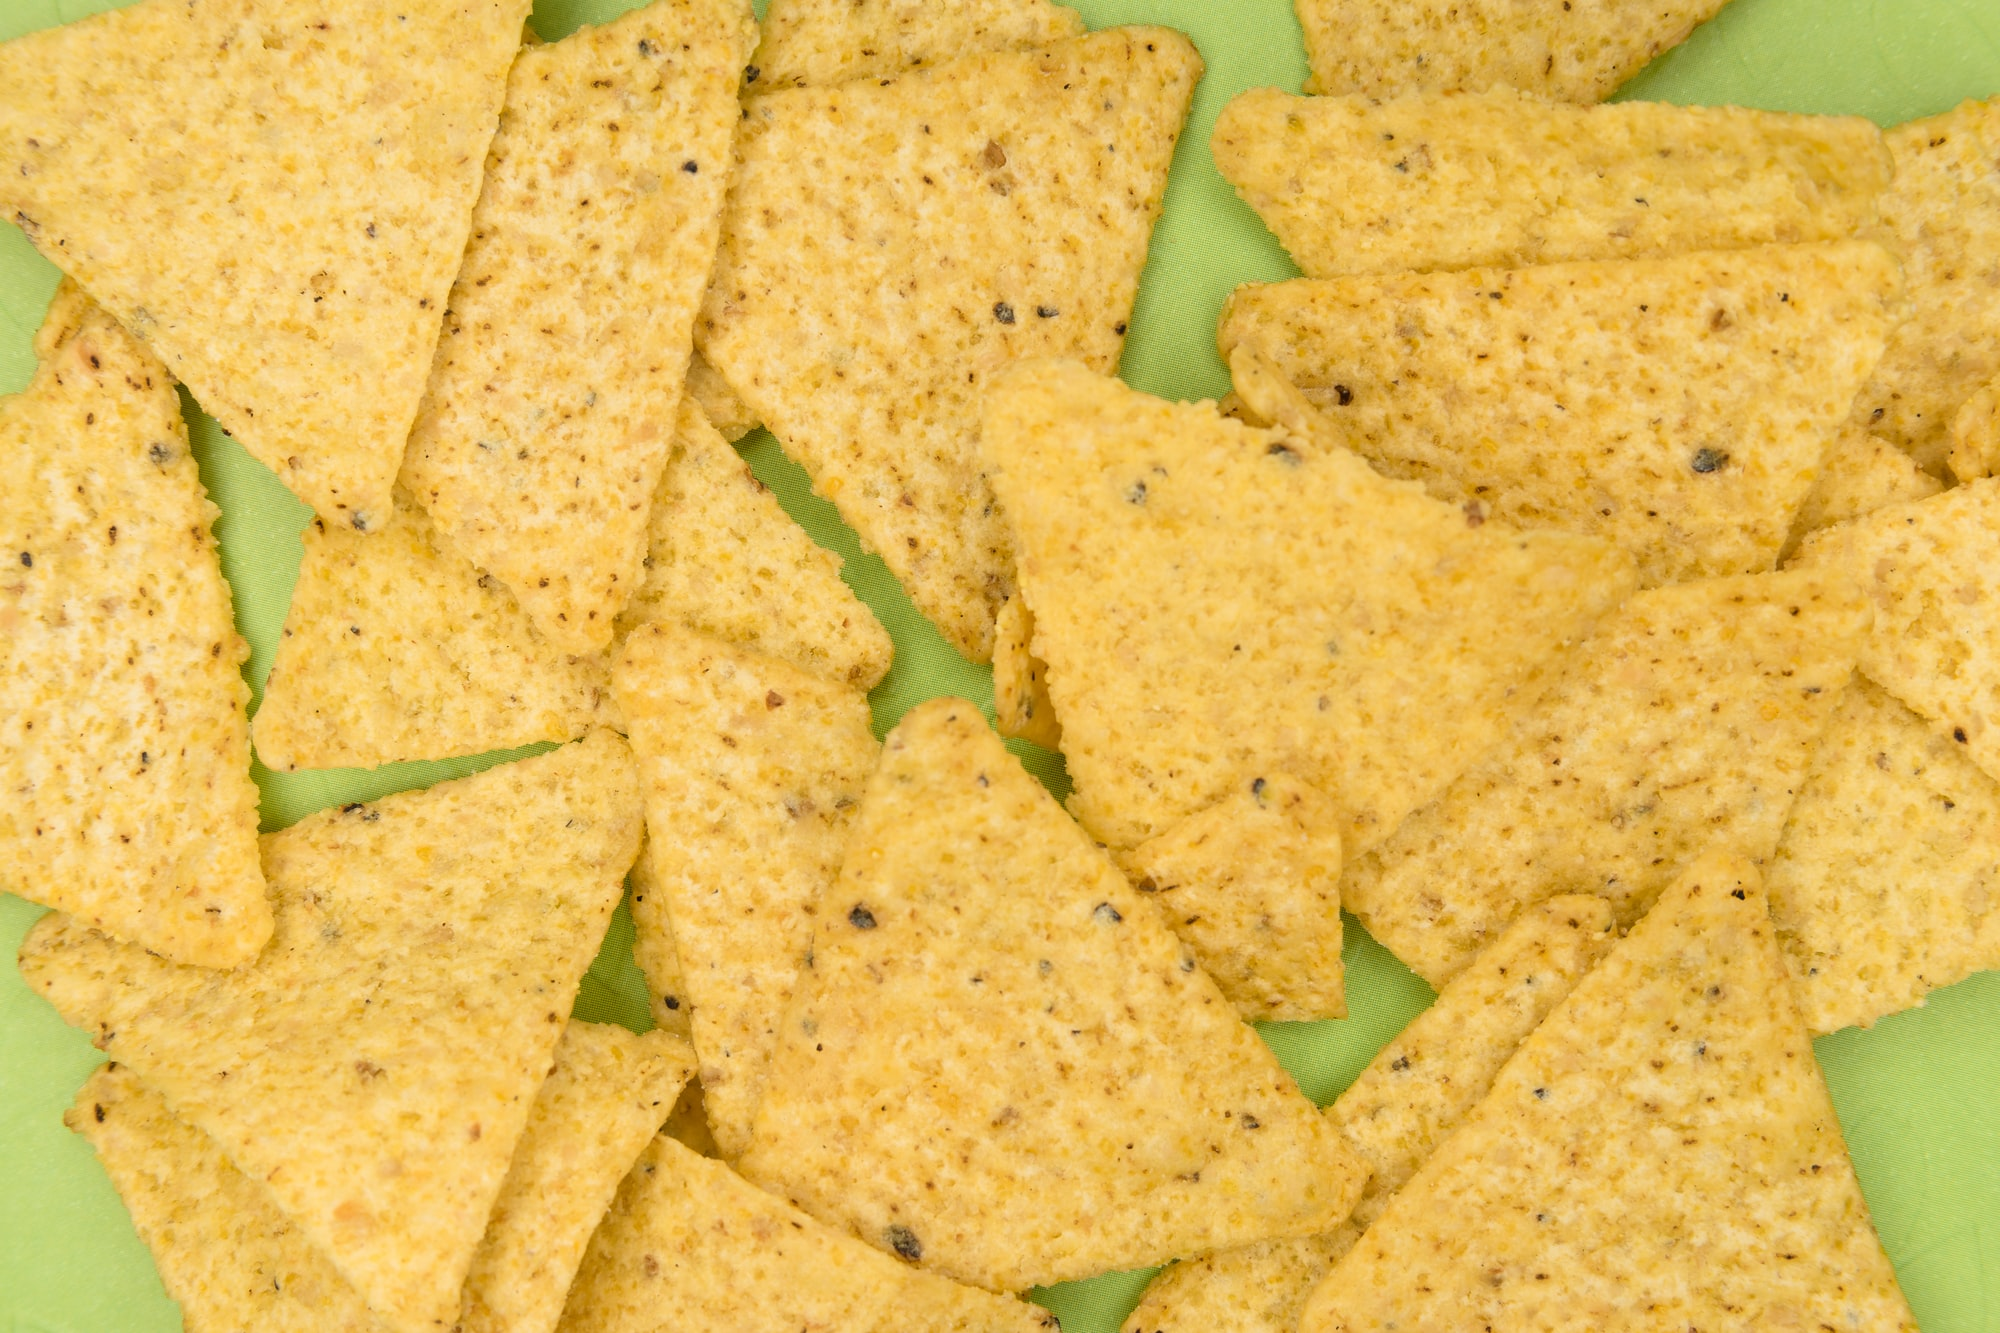 tortilla chips from Mexico